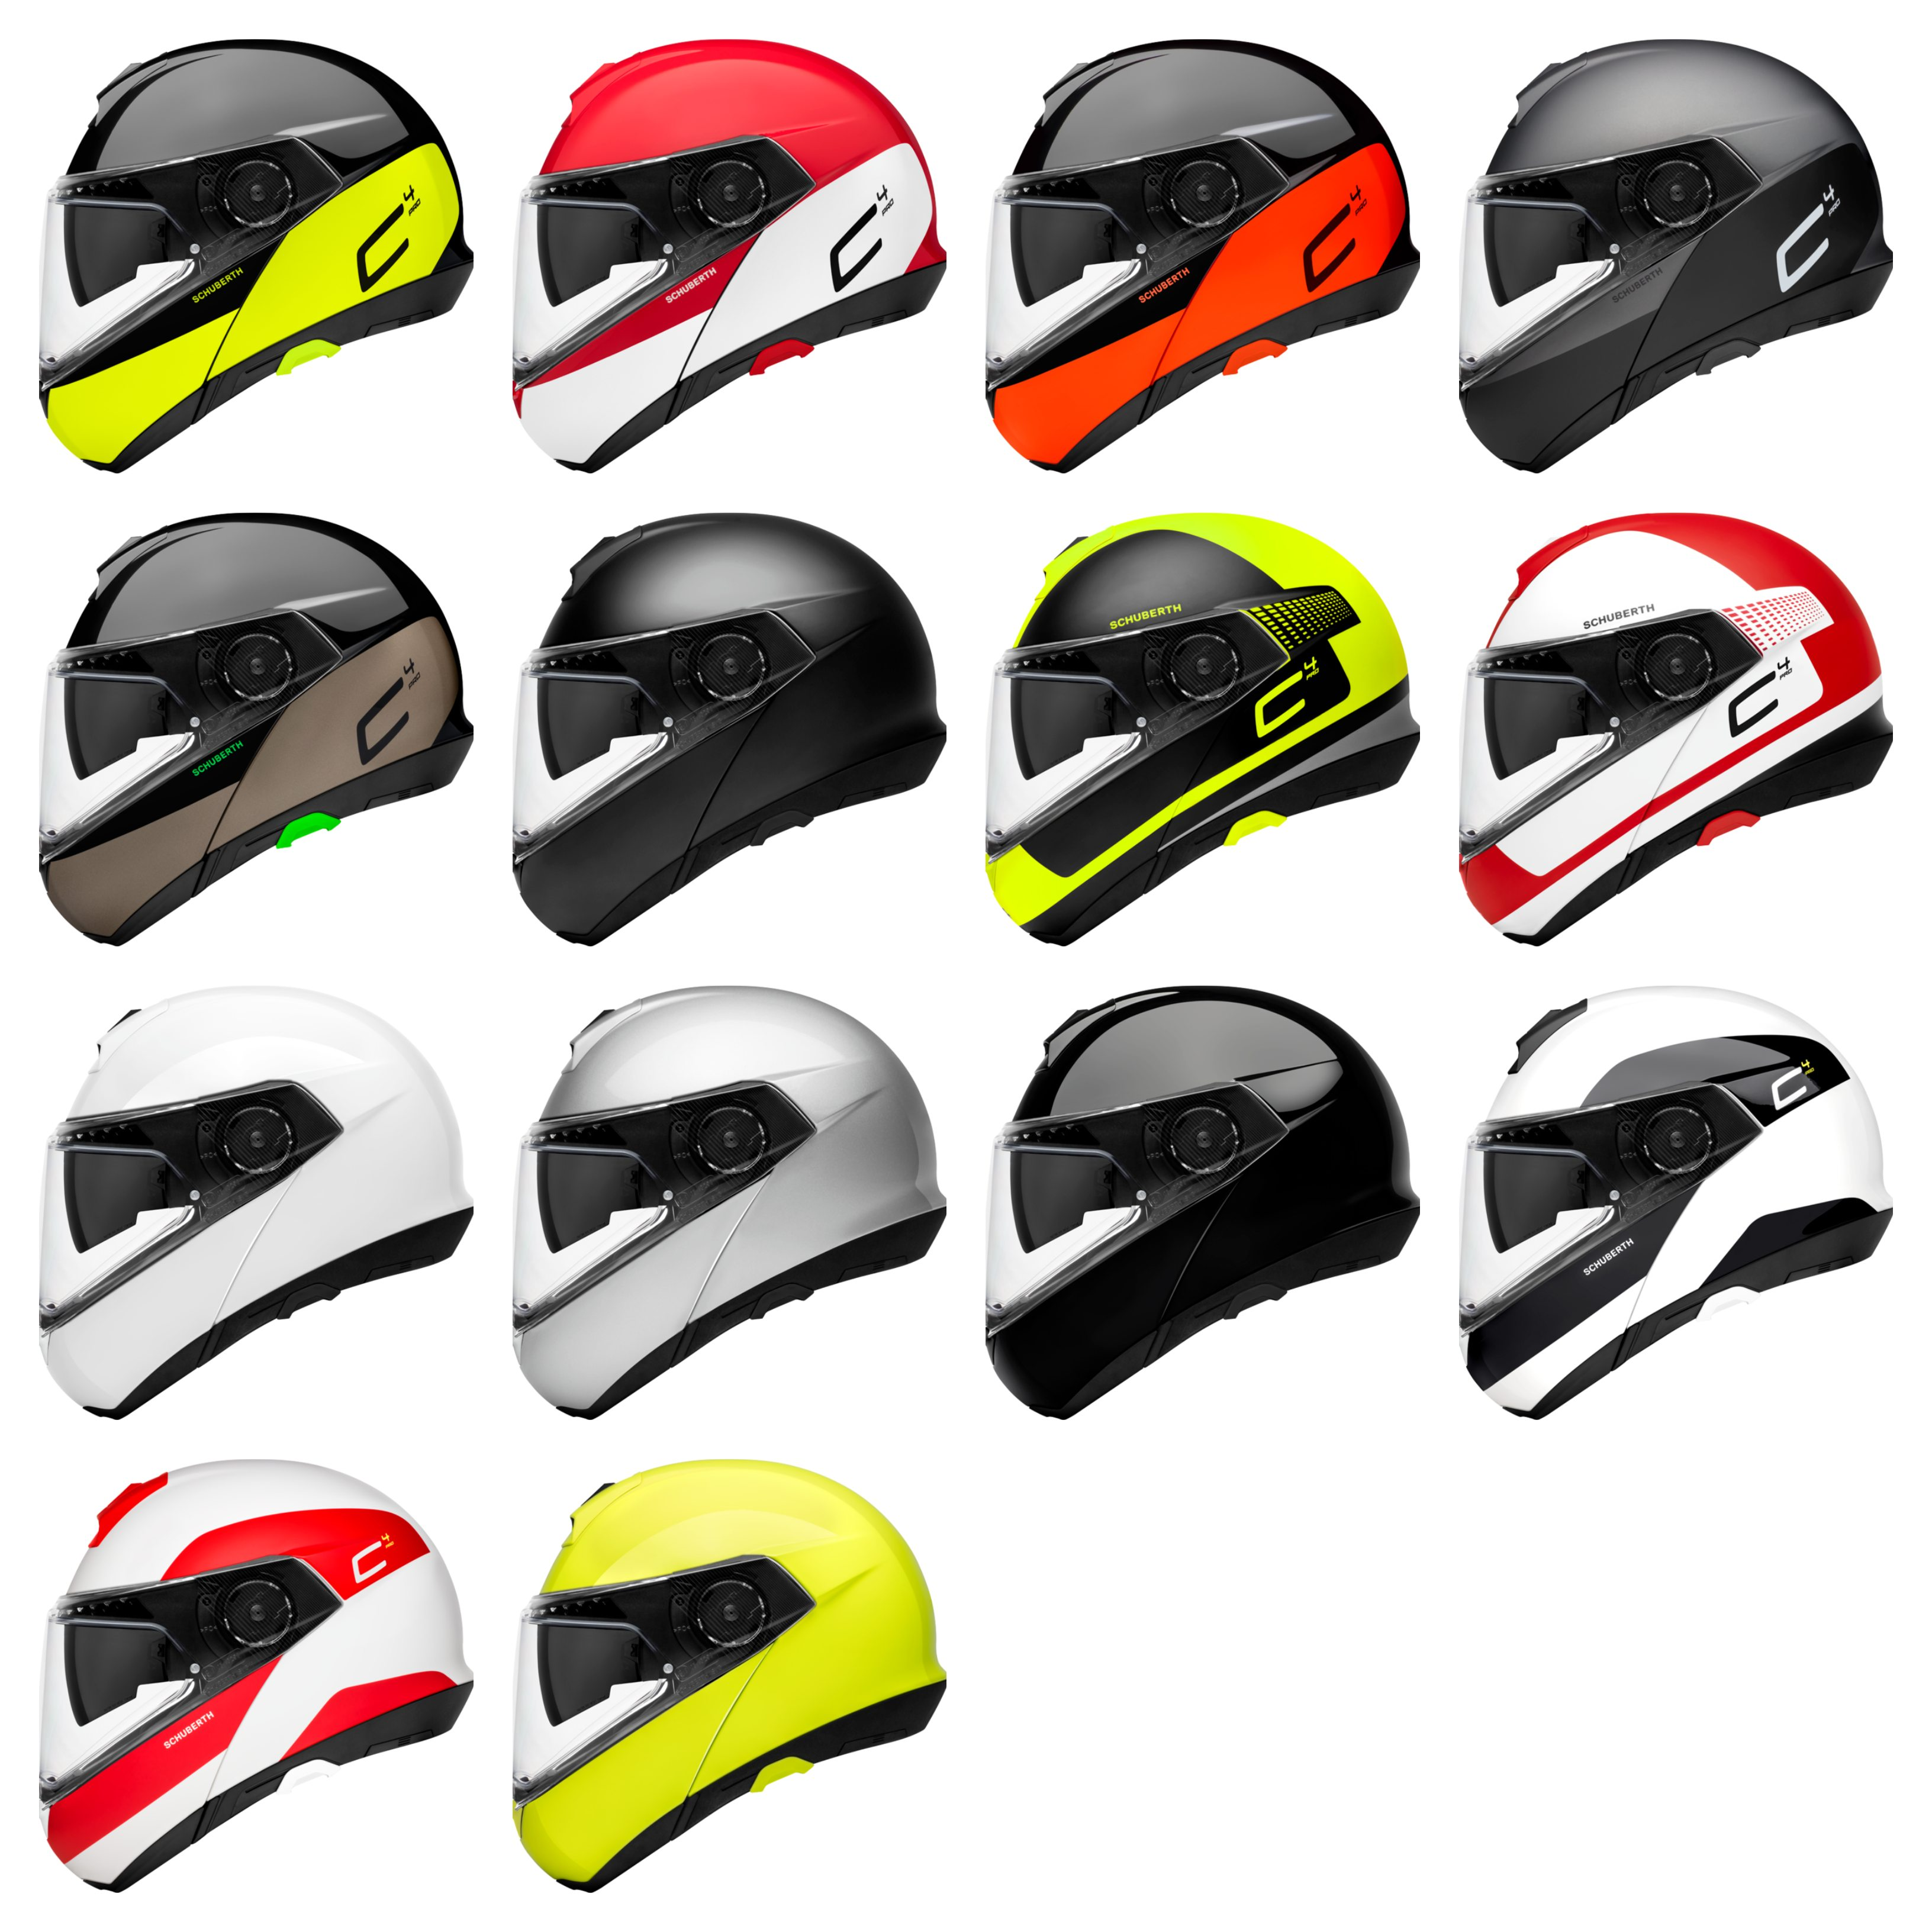 SCHUBERTH C4 Pro Colorways